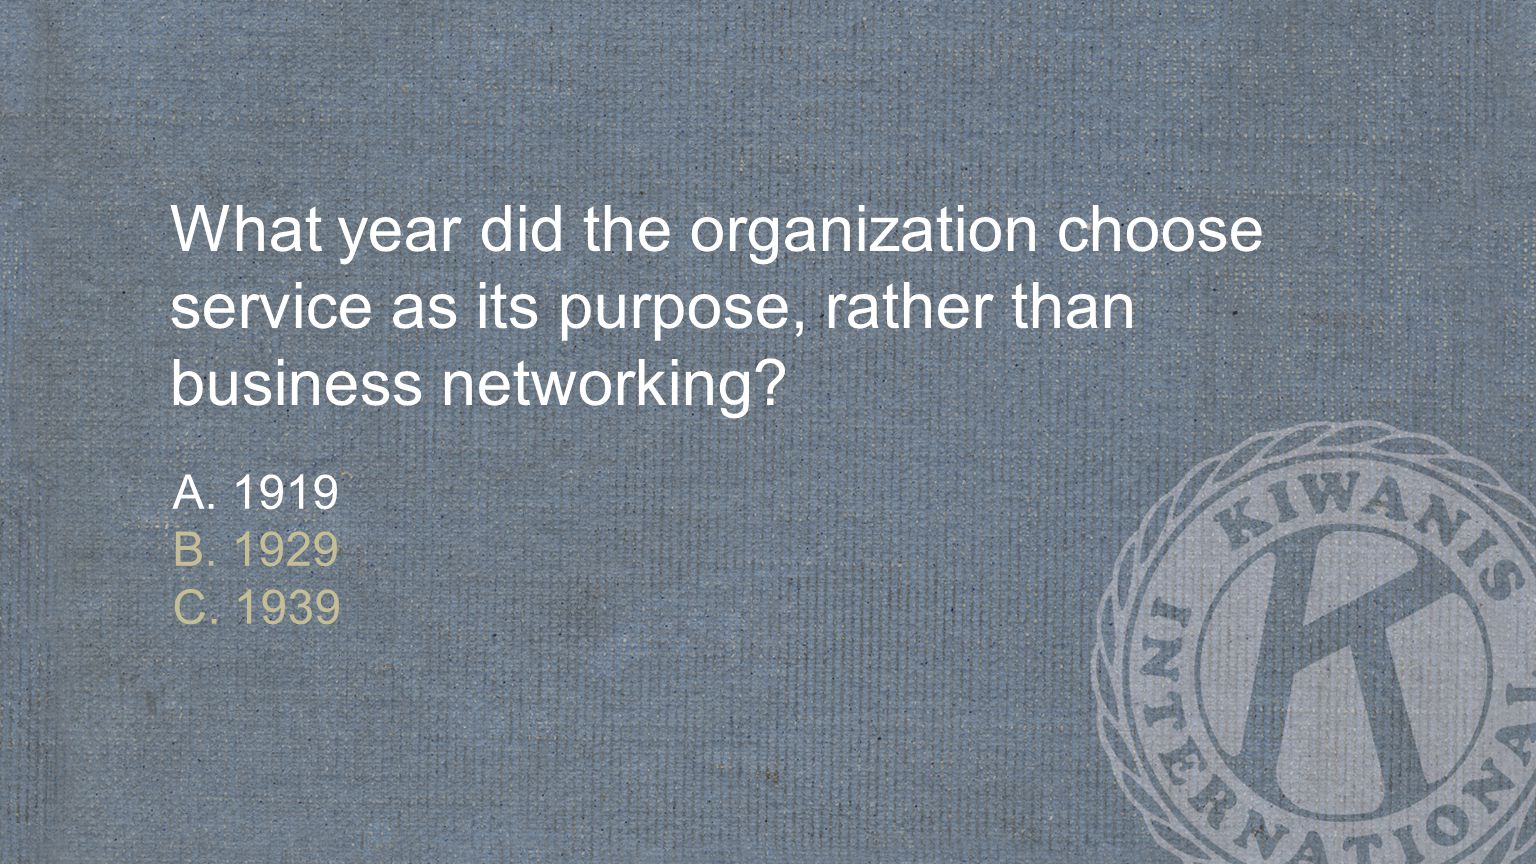 What year did the organization choose service as its purpose, rather than business networking